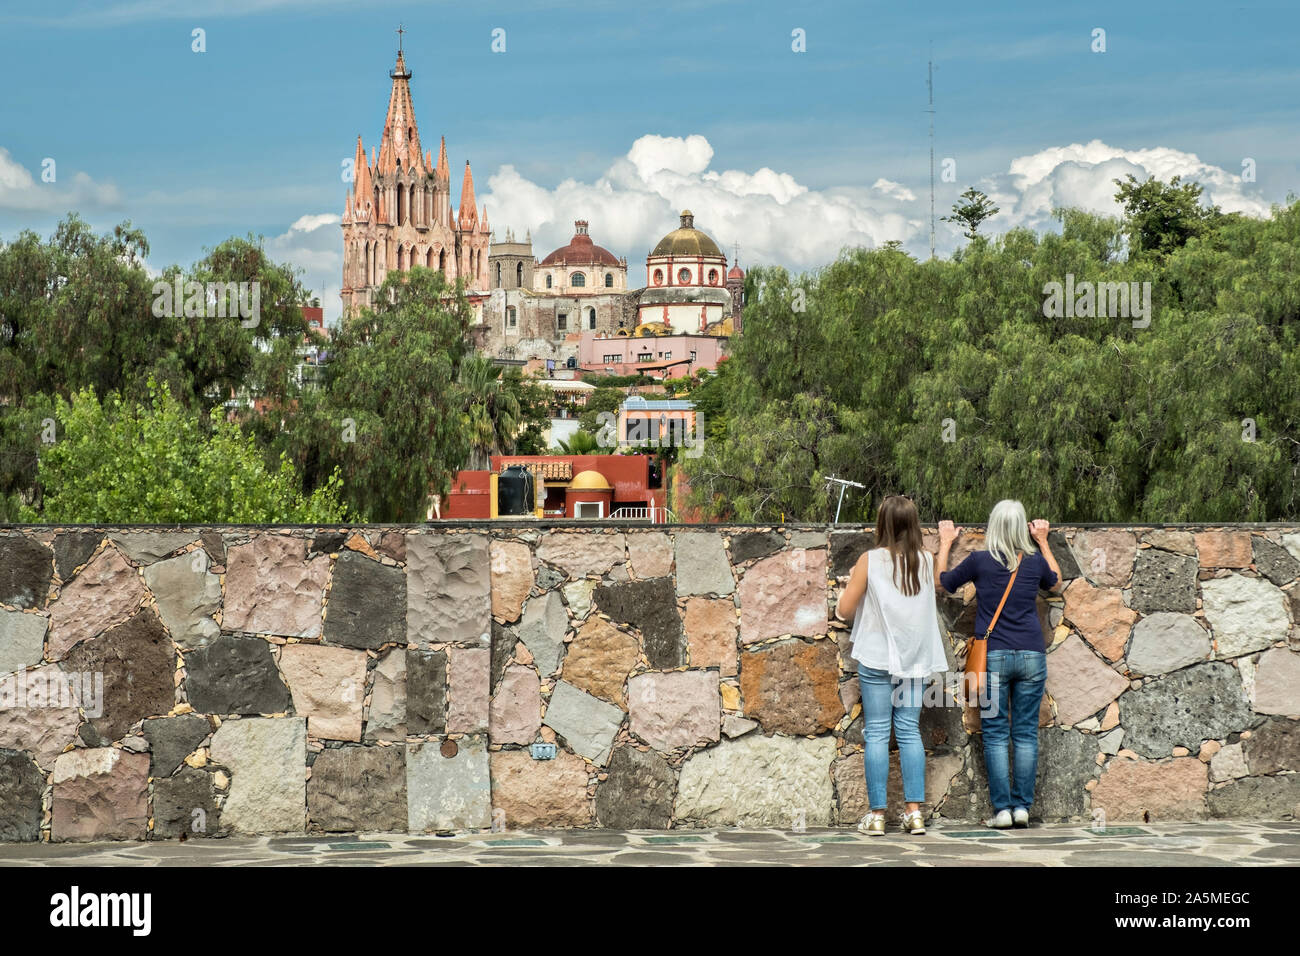 Domes and spires of the Parroquia San Miguel Arcangel church viewed from Instituto Allende in the historic district of San Miguel de Allende, Mexico. Stock Photo